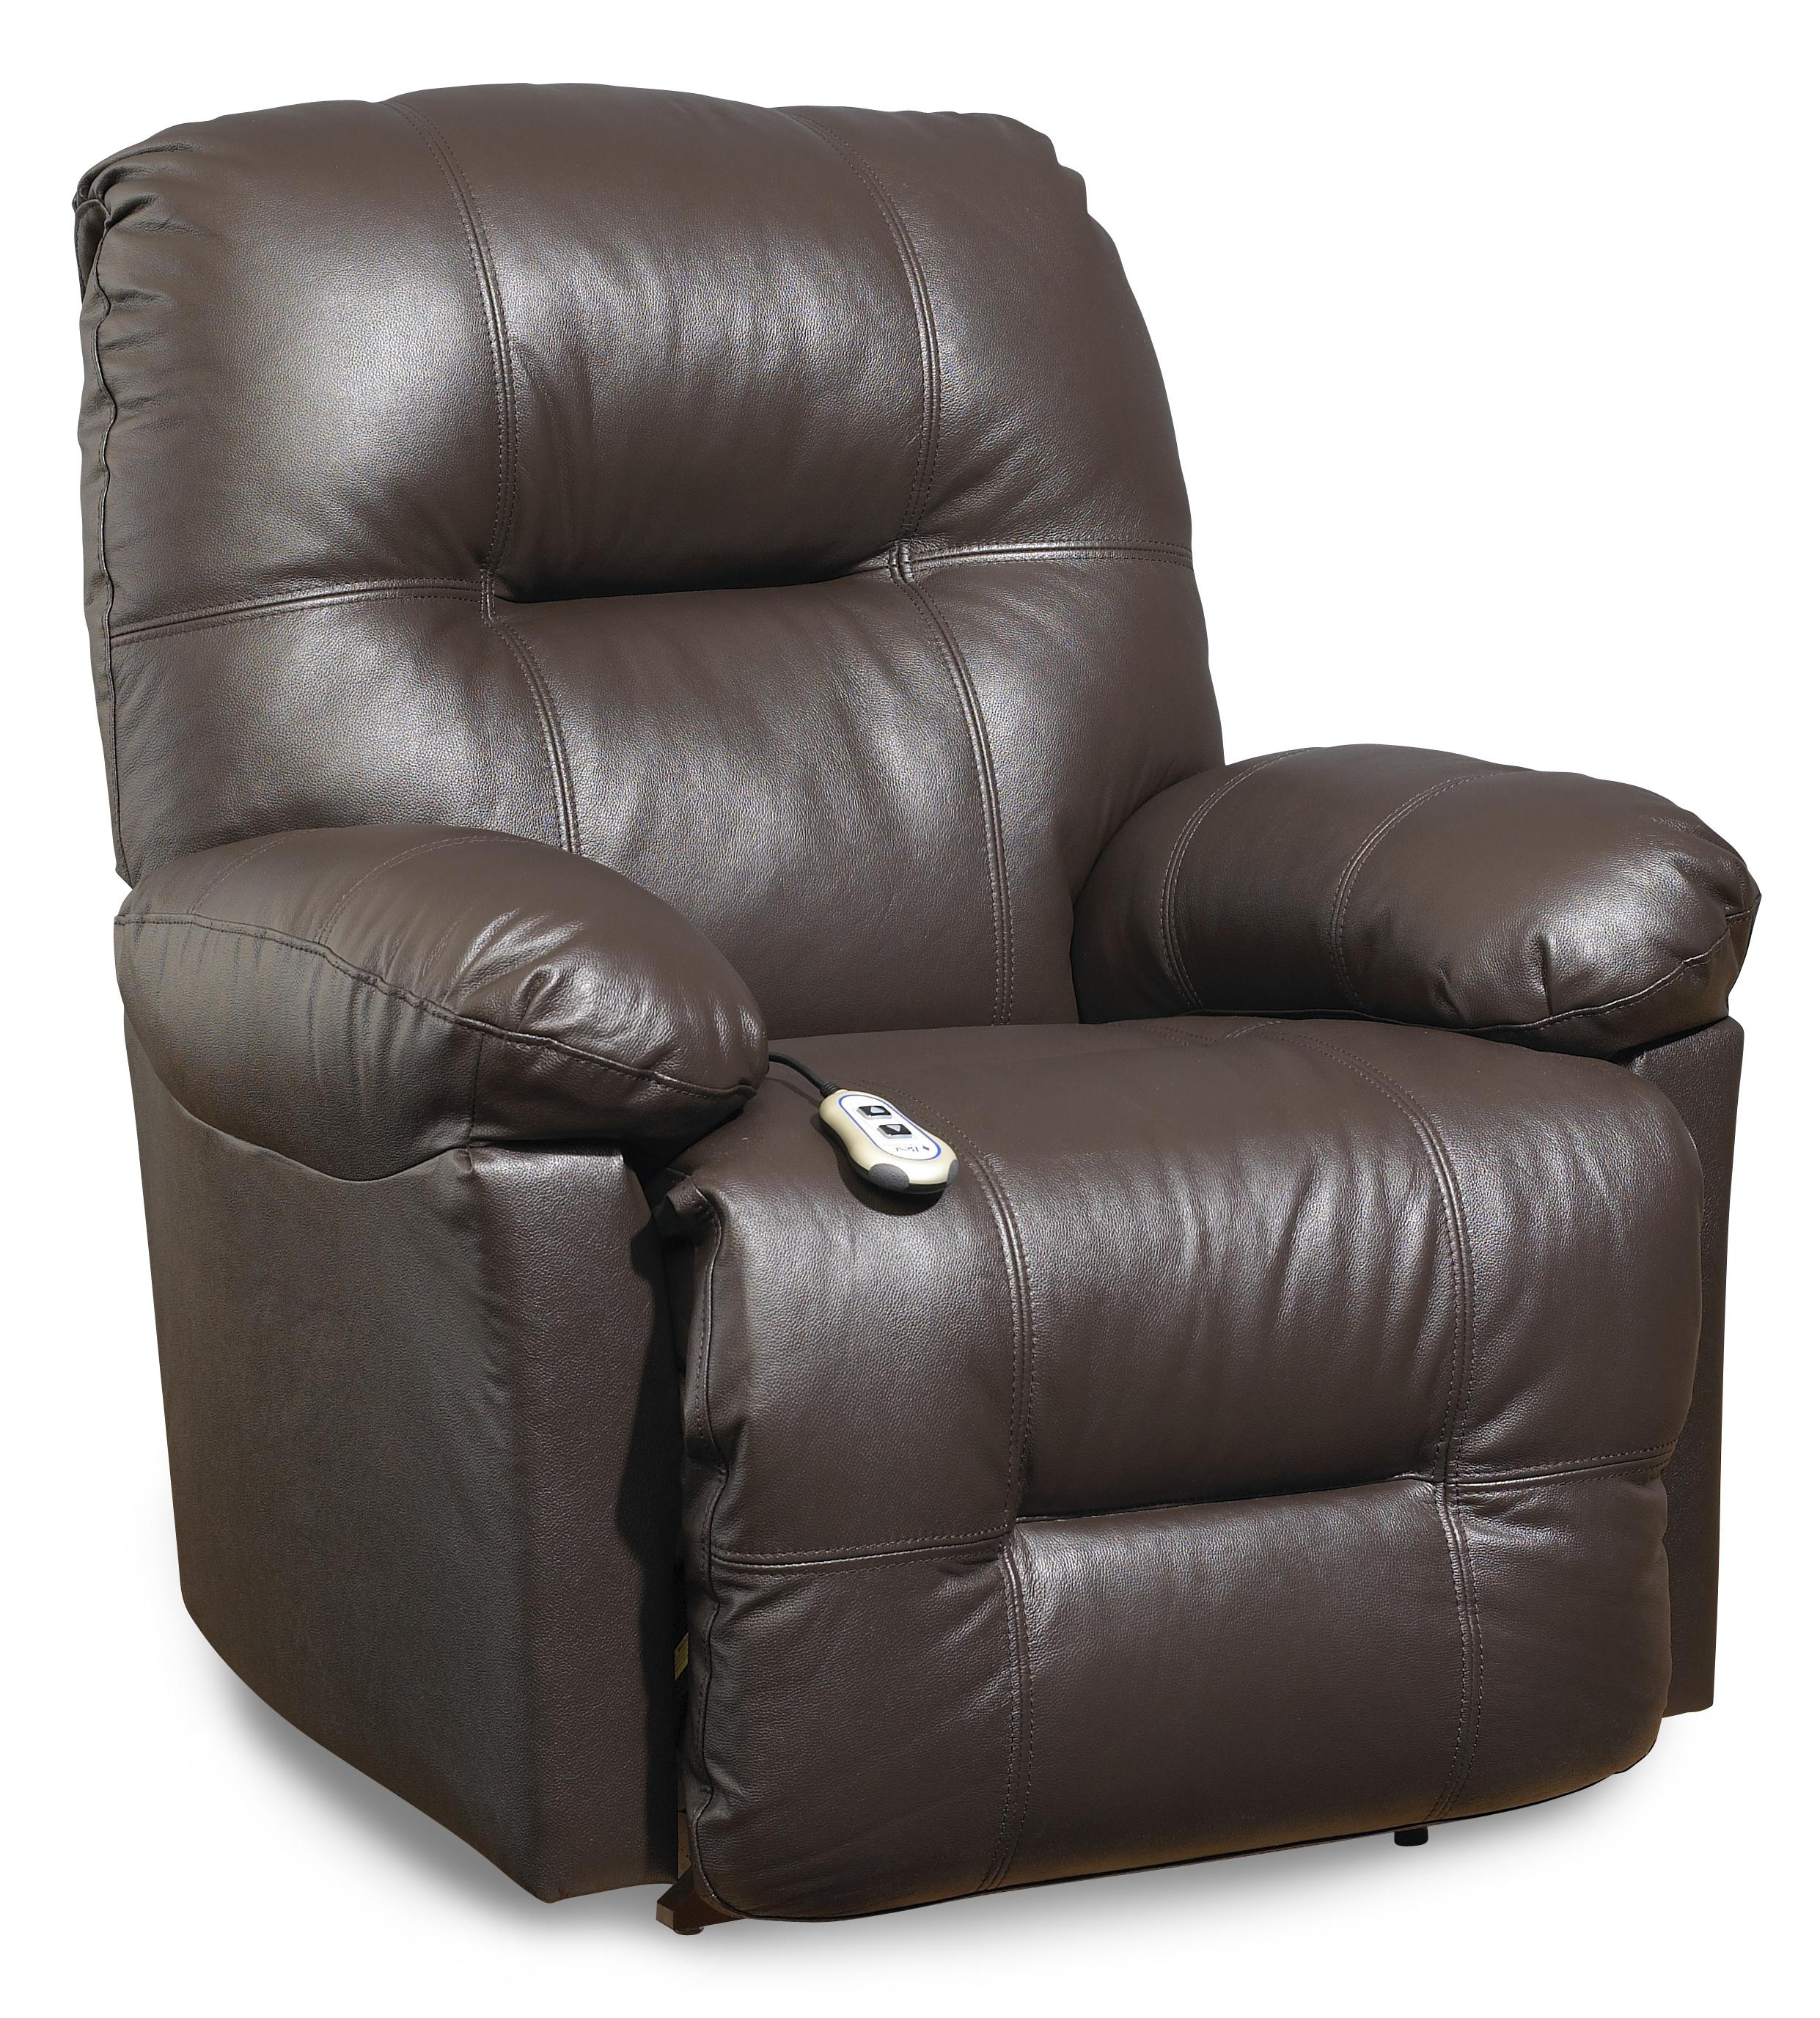 Best Home Furnishings S501 Zaynah Power Lift Recliner - Item Number: 9MW21